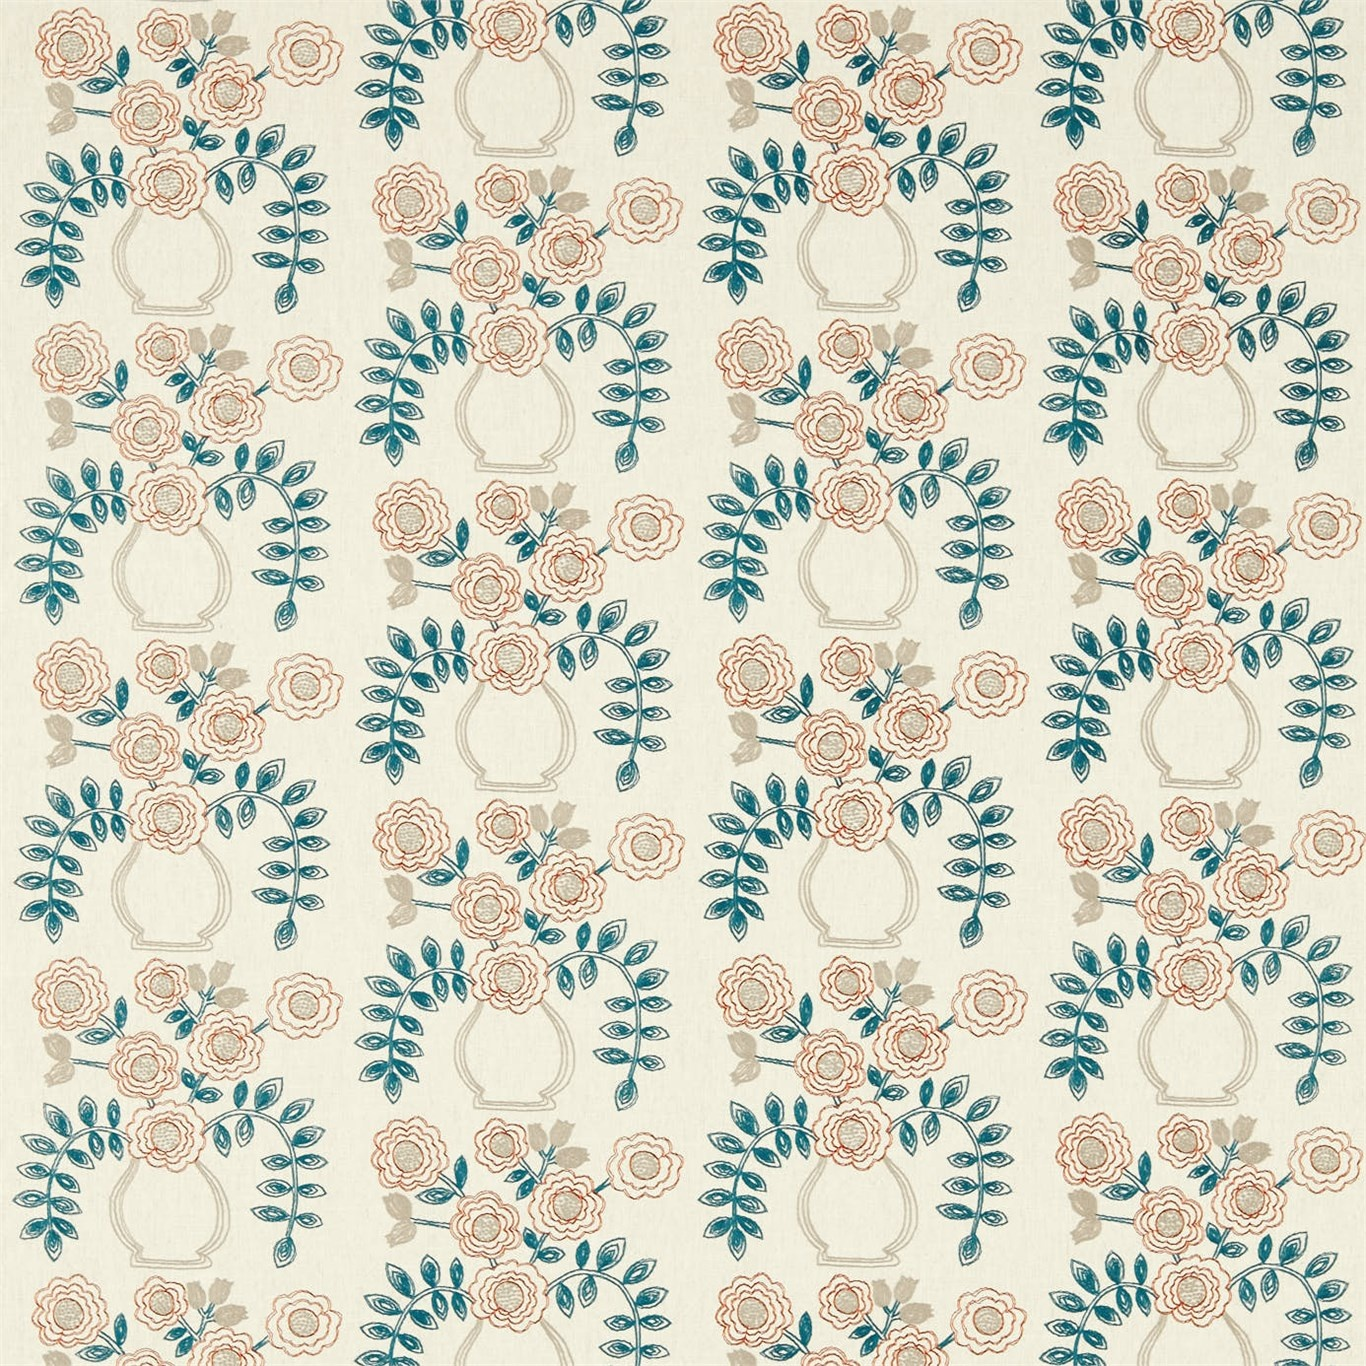 Image of Sanderson Home Flower Pot Brick Curtain Fabric 235876